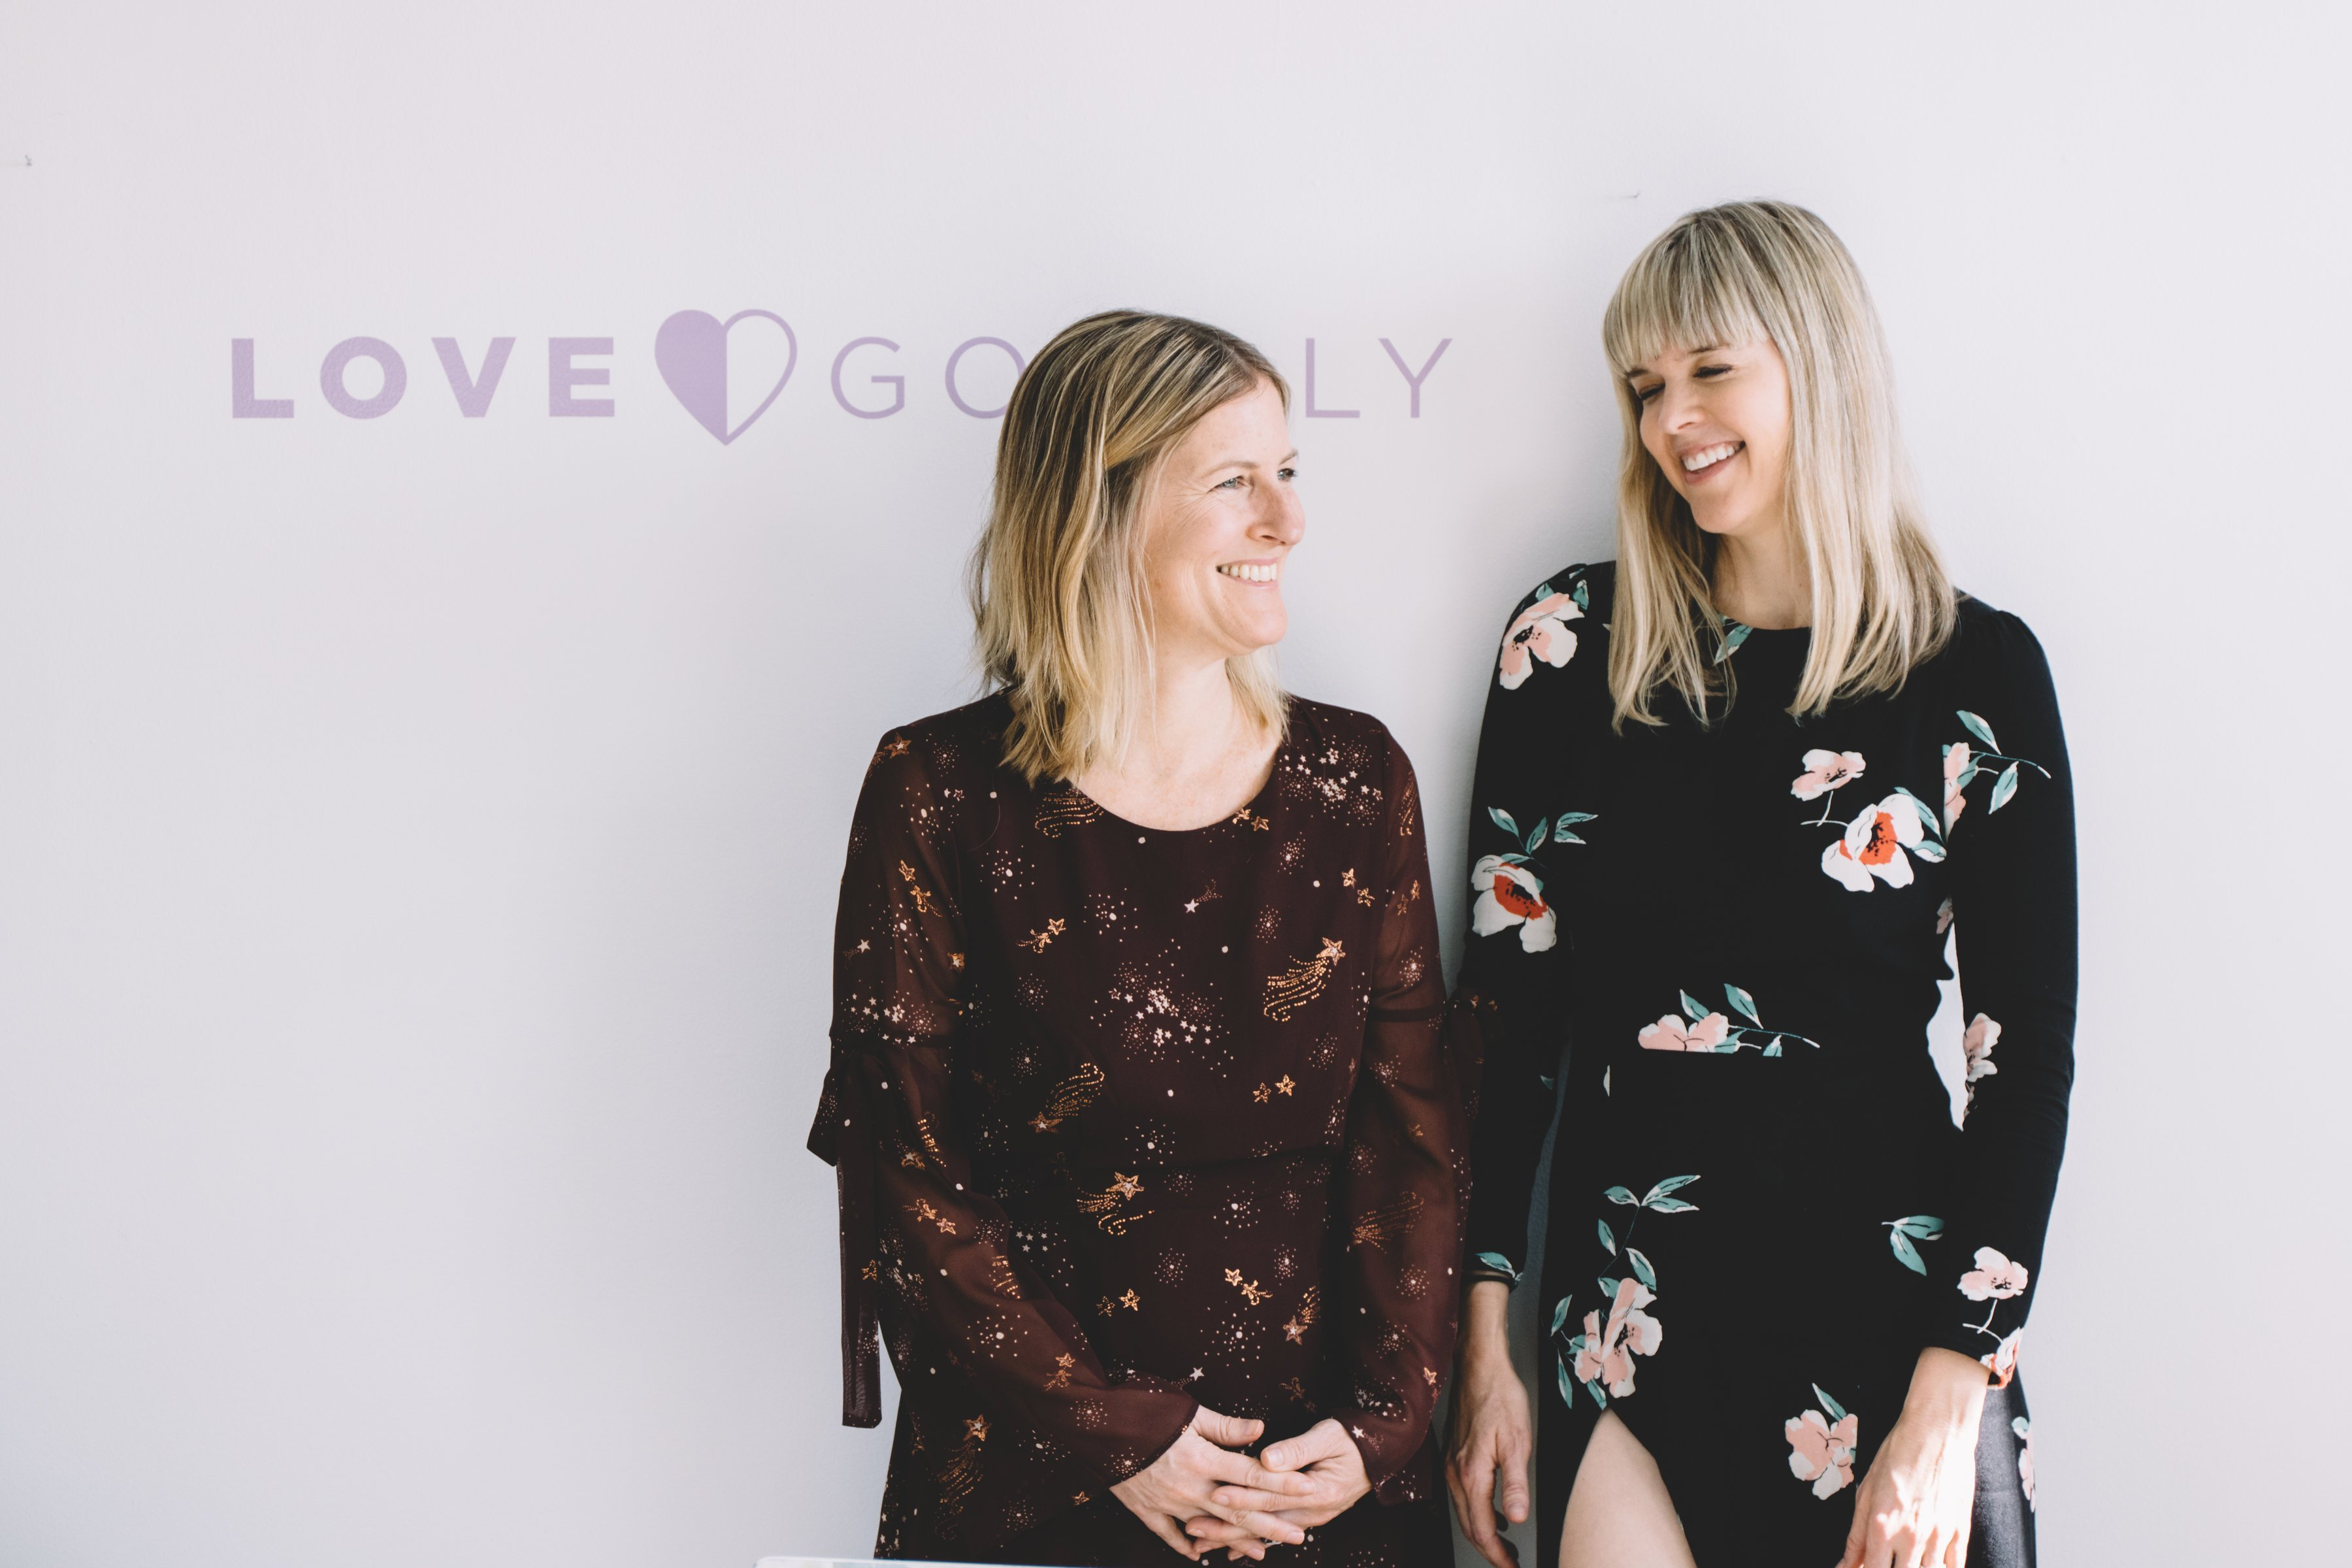 Love Goodly founders Justine Lassoff and Katie Bogue Miller